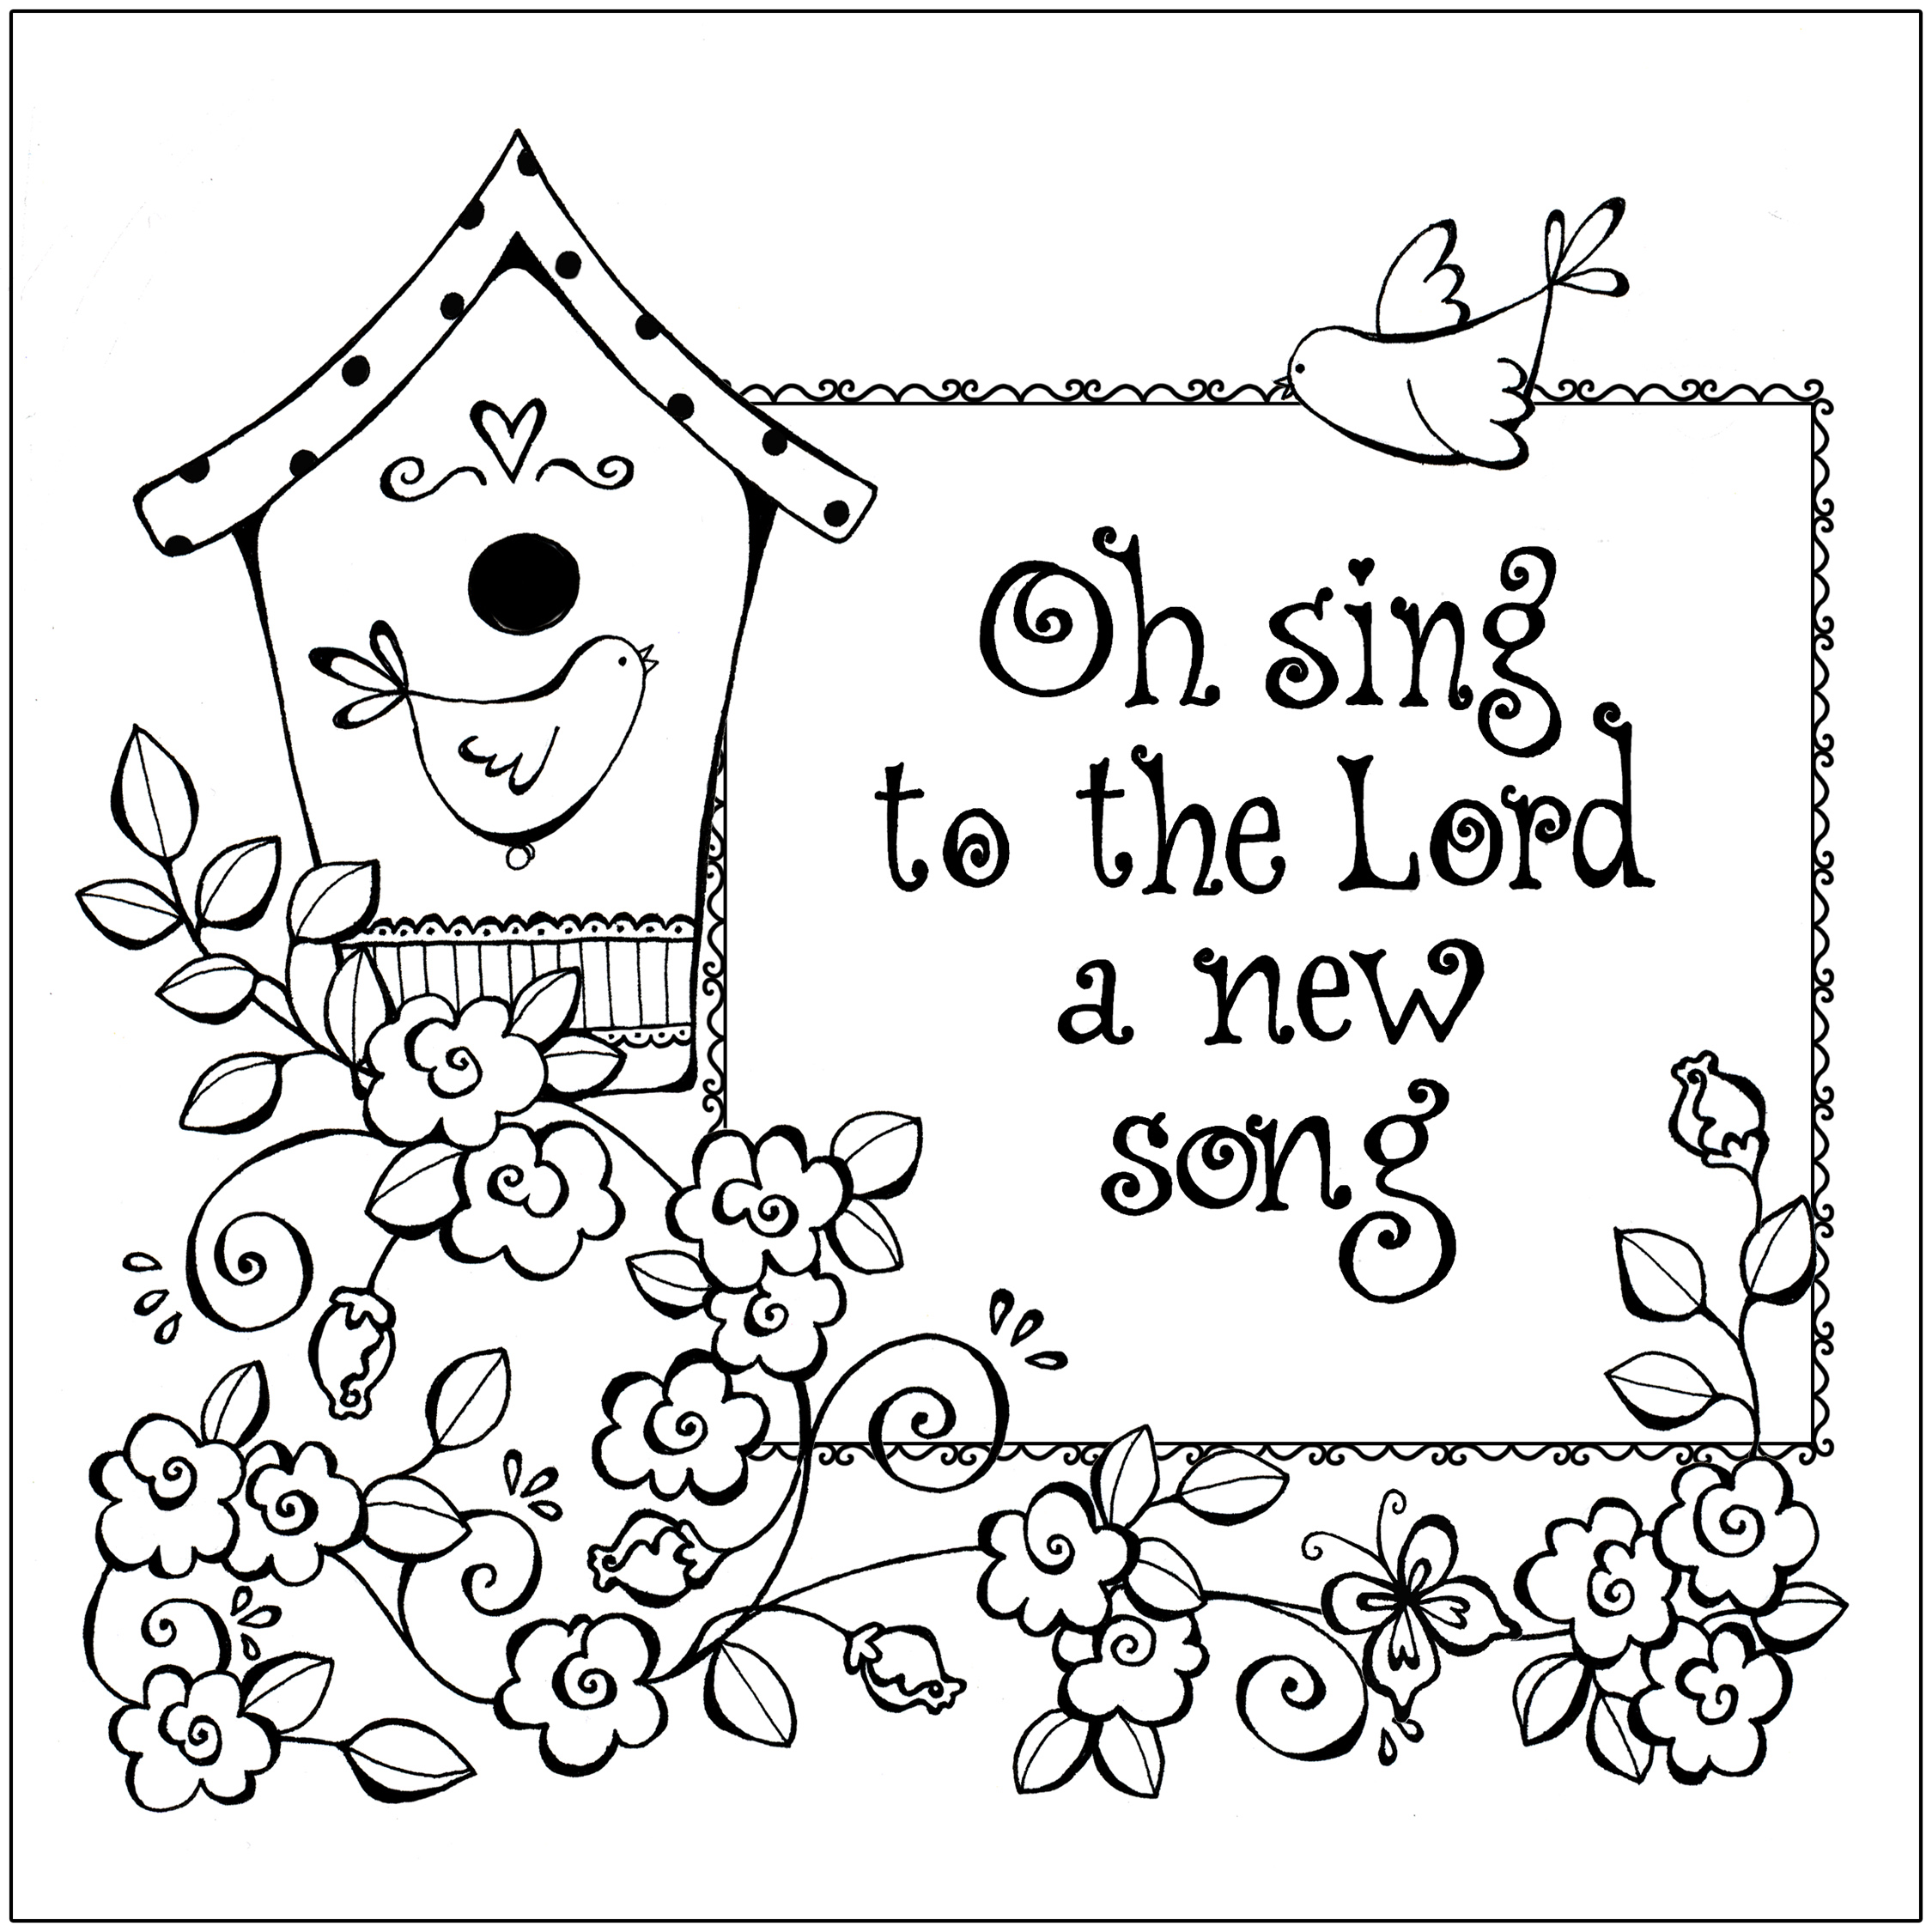 christian family coloring pages - photo#25